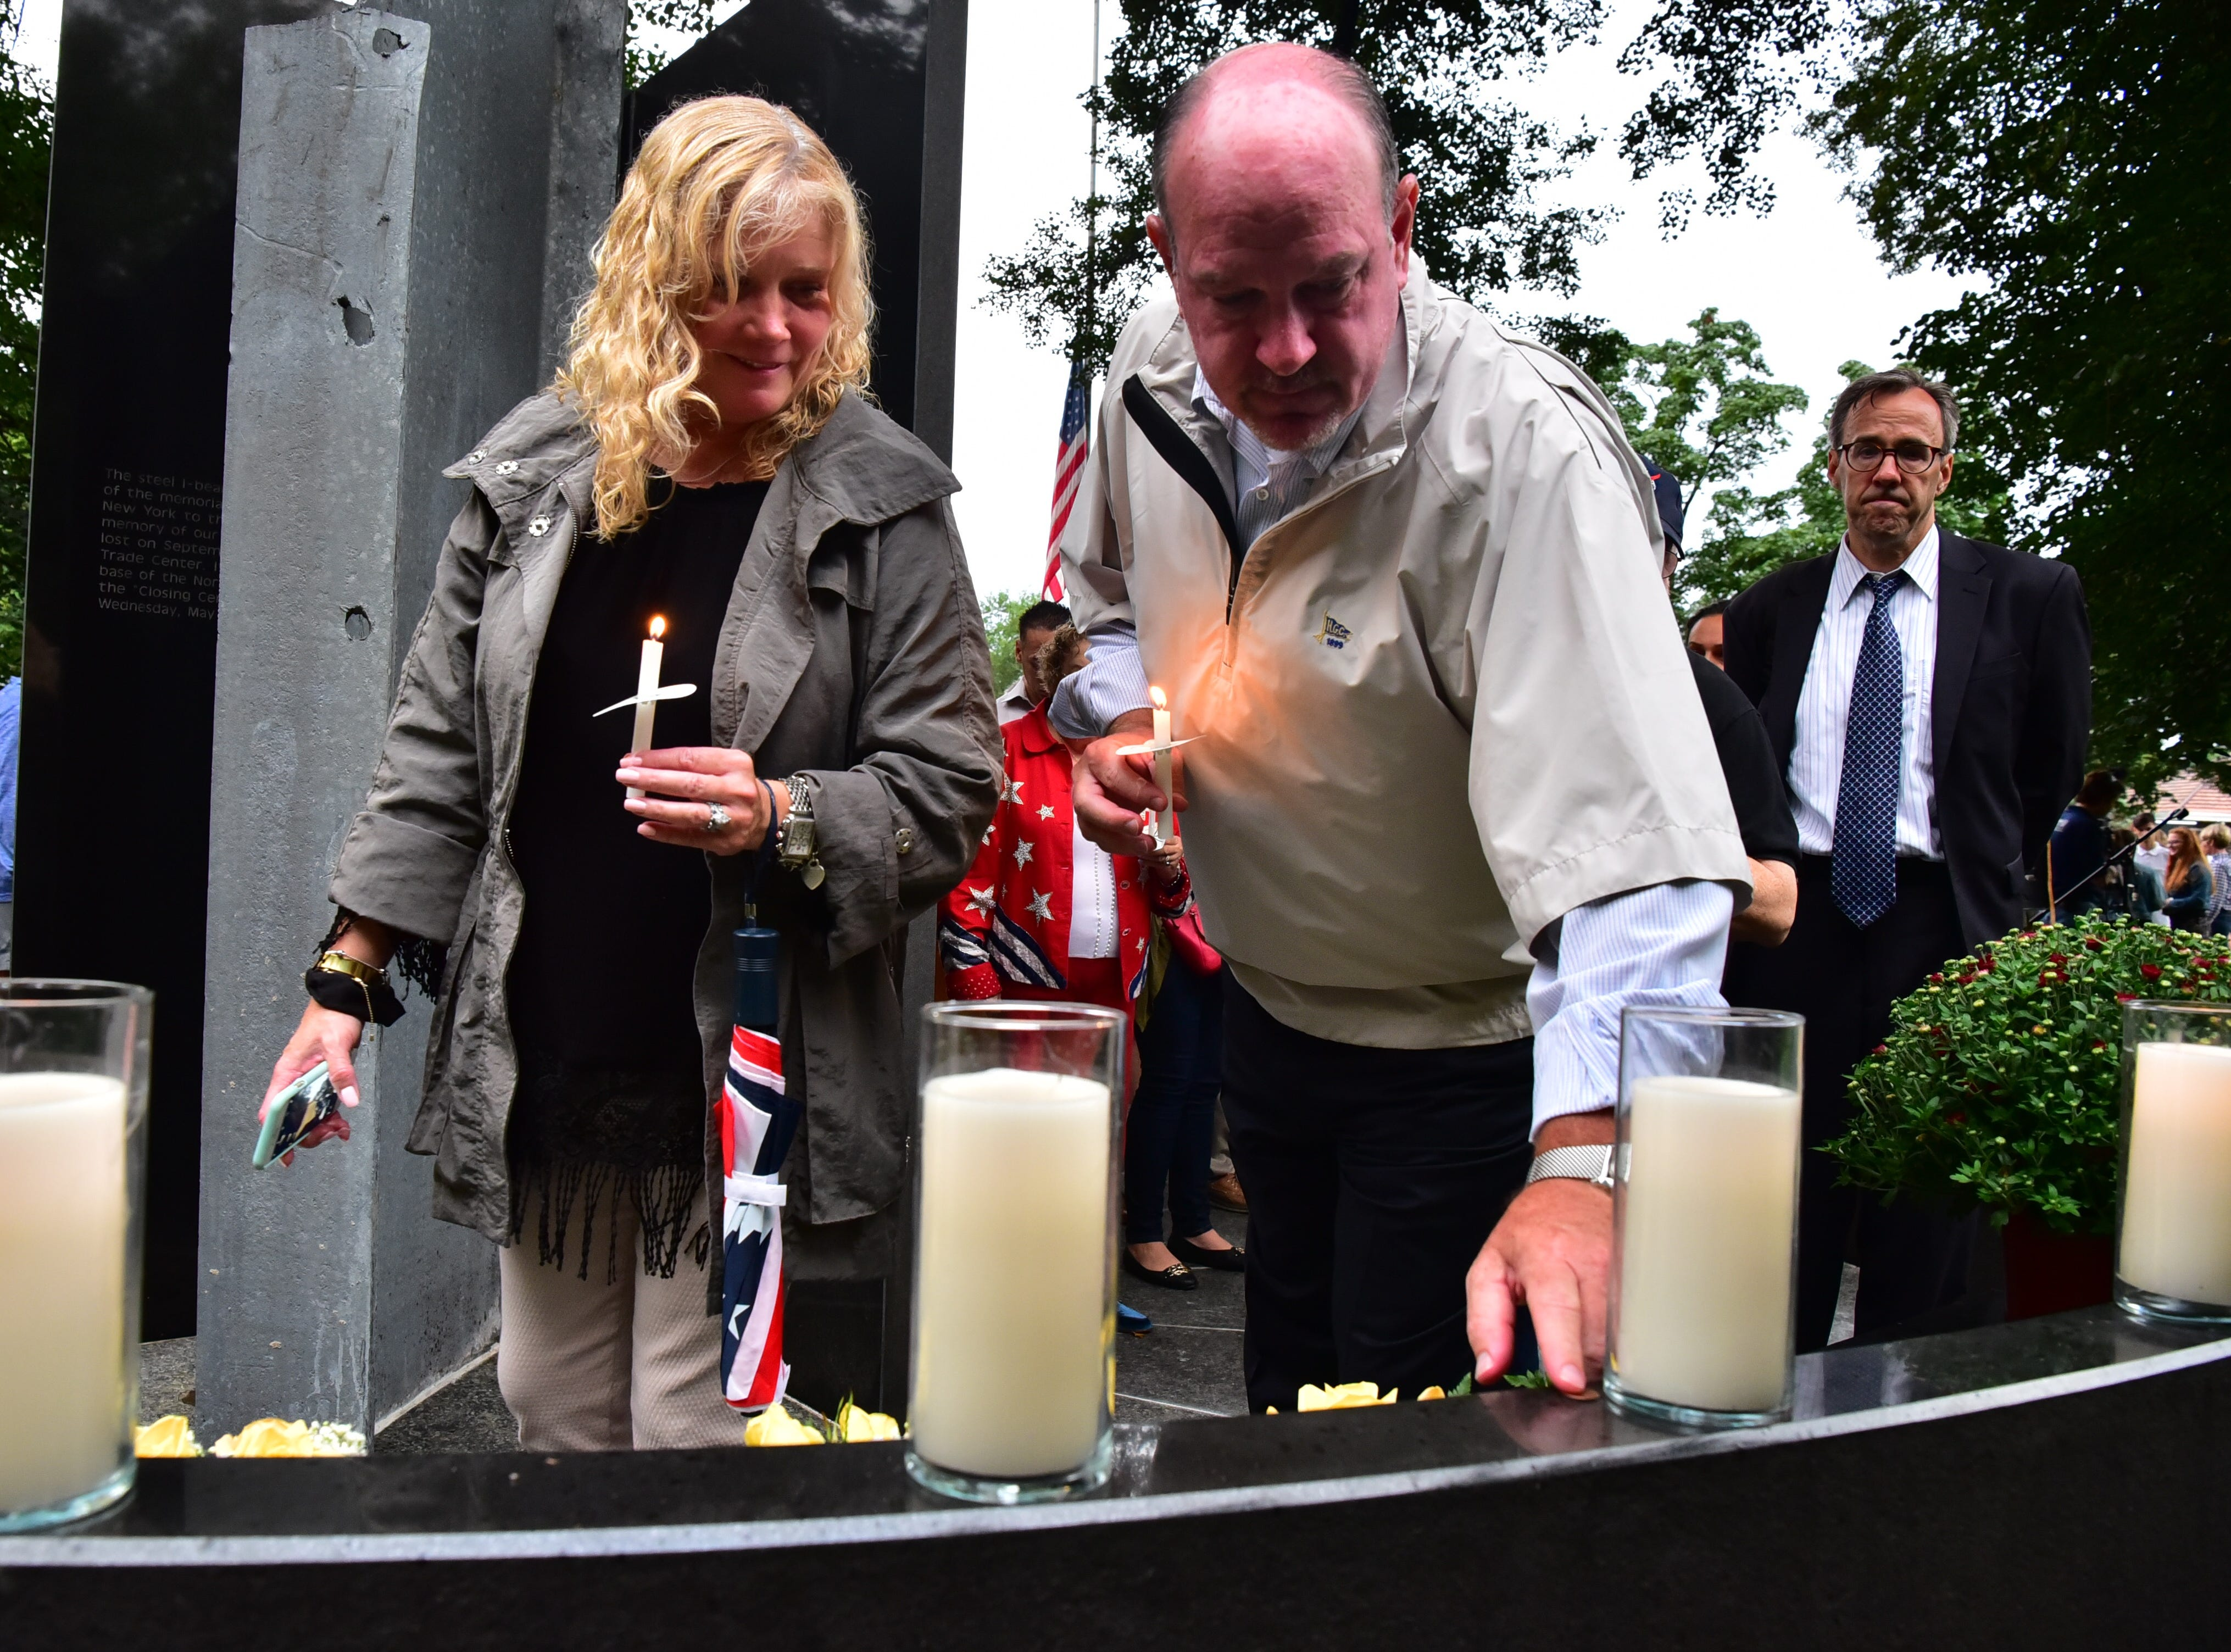 John Henderson and his wife Alison, pay respect to her brother and 9-11 victim Sean Calon at 9-11 memorial in Glen Rock, NJ.